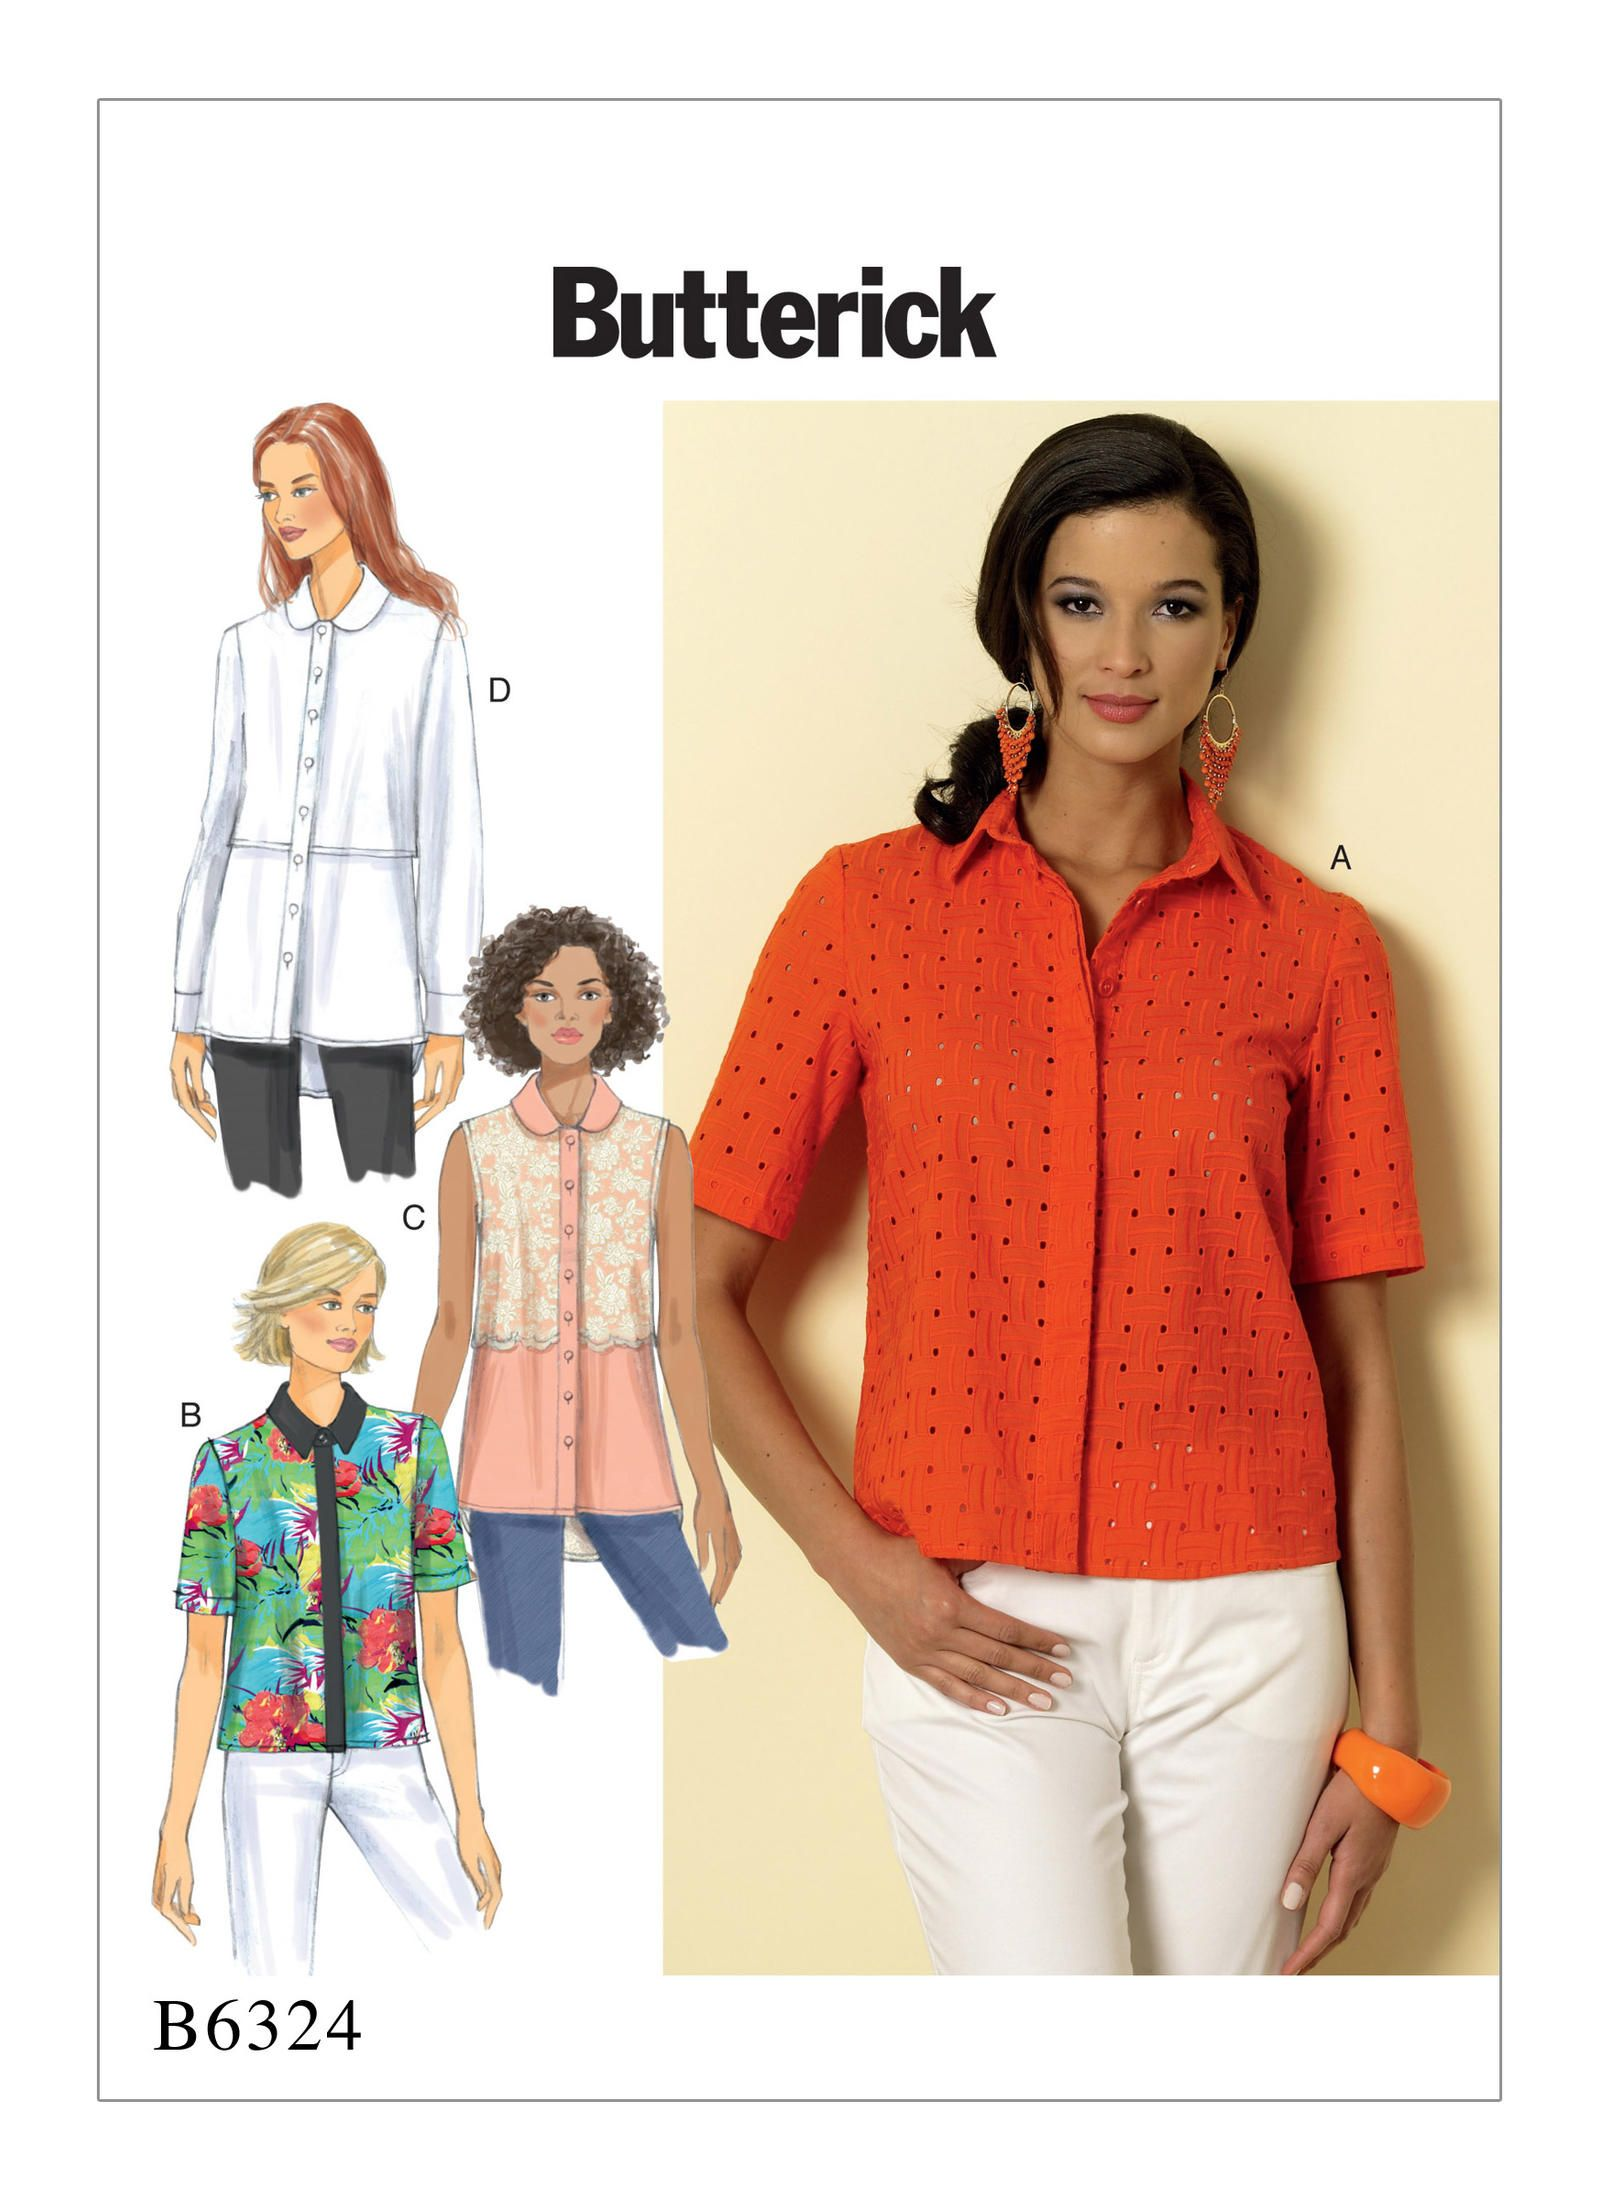 f3acf351 B6324 | Misses' Button-Down Collared Shirts Sewing Pattern | Butterick  Patterns